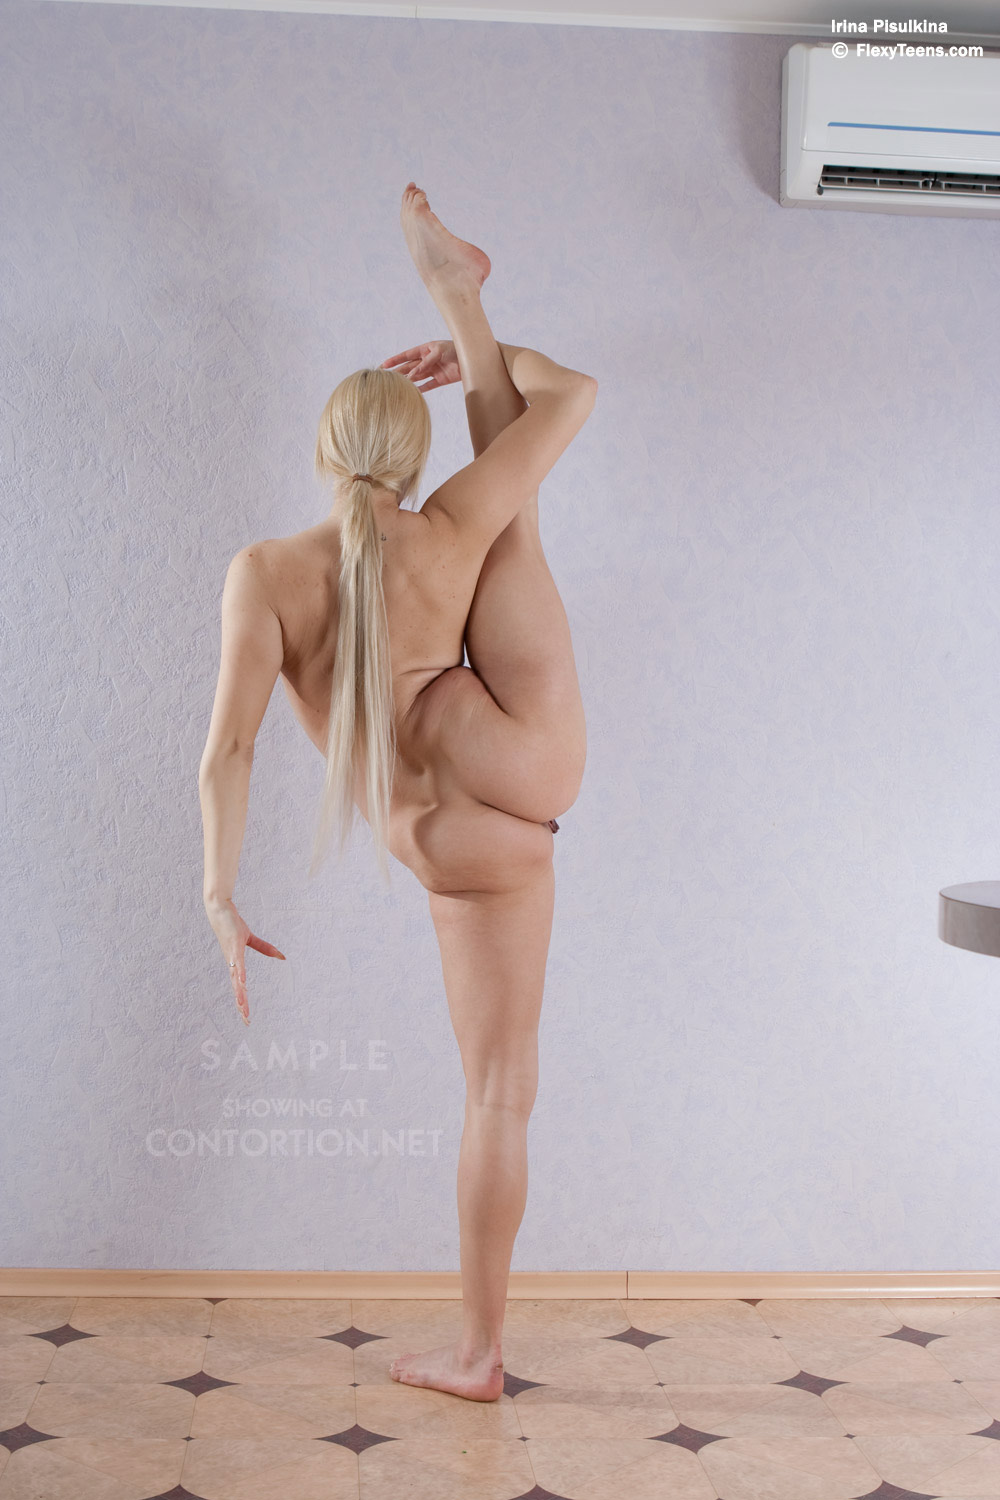 naked flexible girl hot flexible girl flexible girl porn